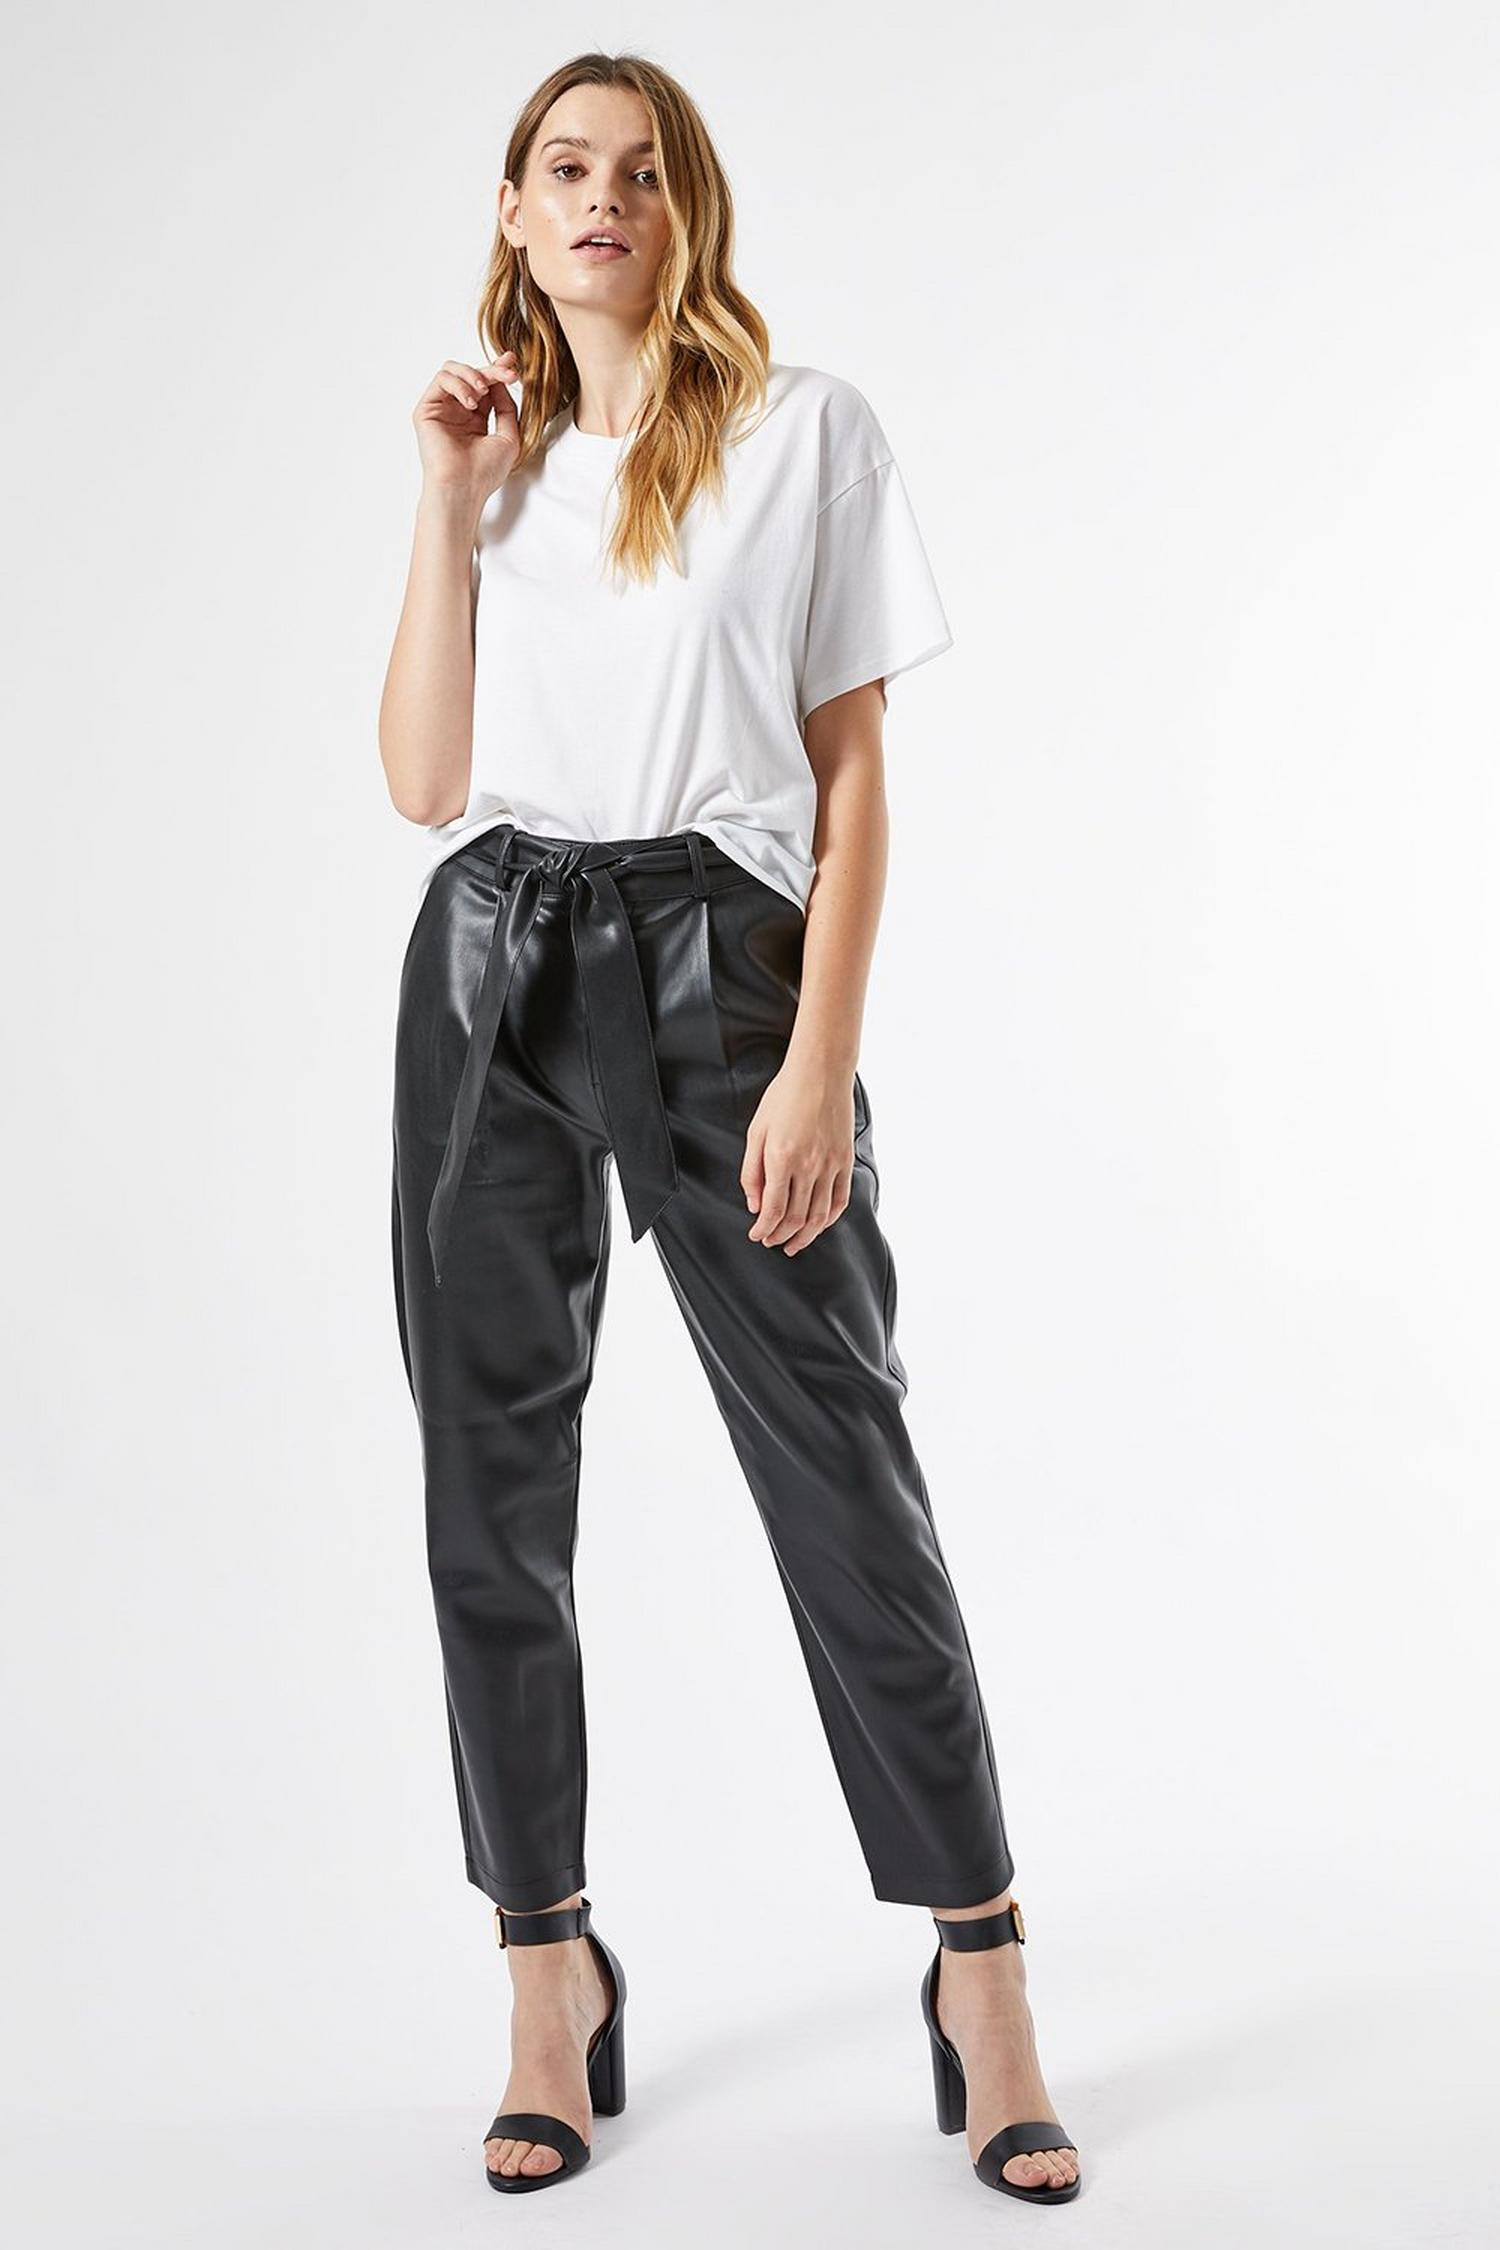 105 Black Faux Leather Belted Trousers image number 4